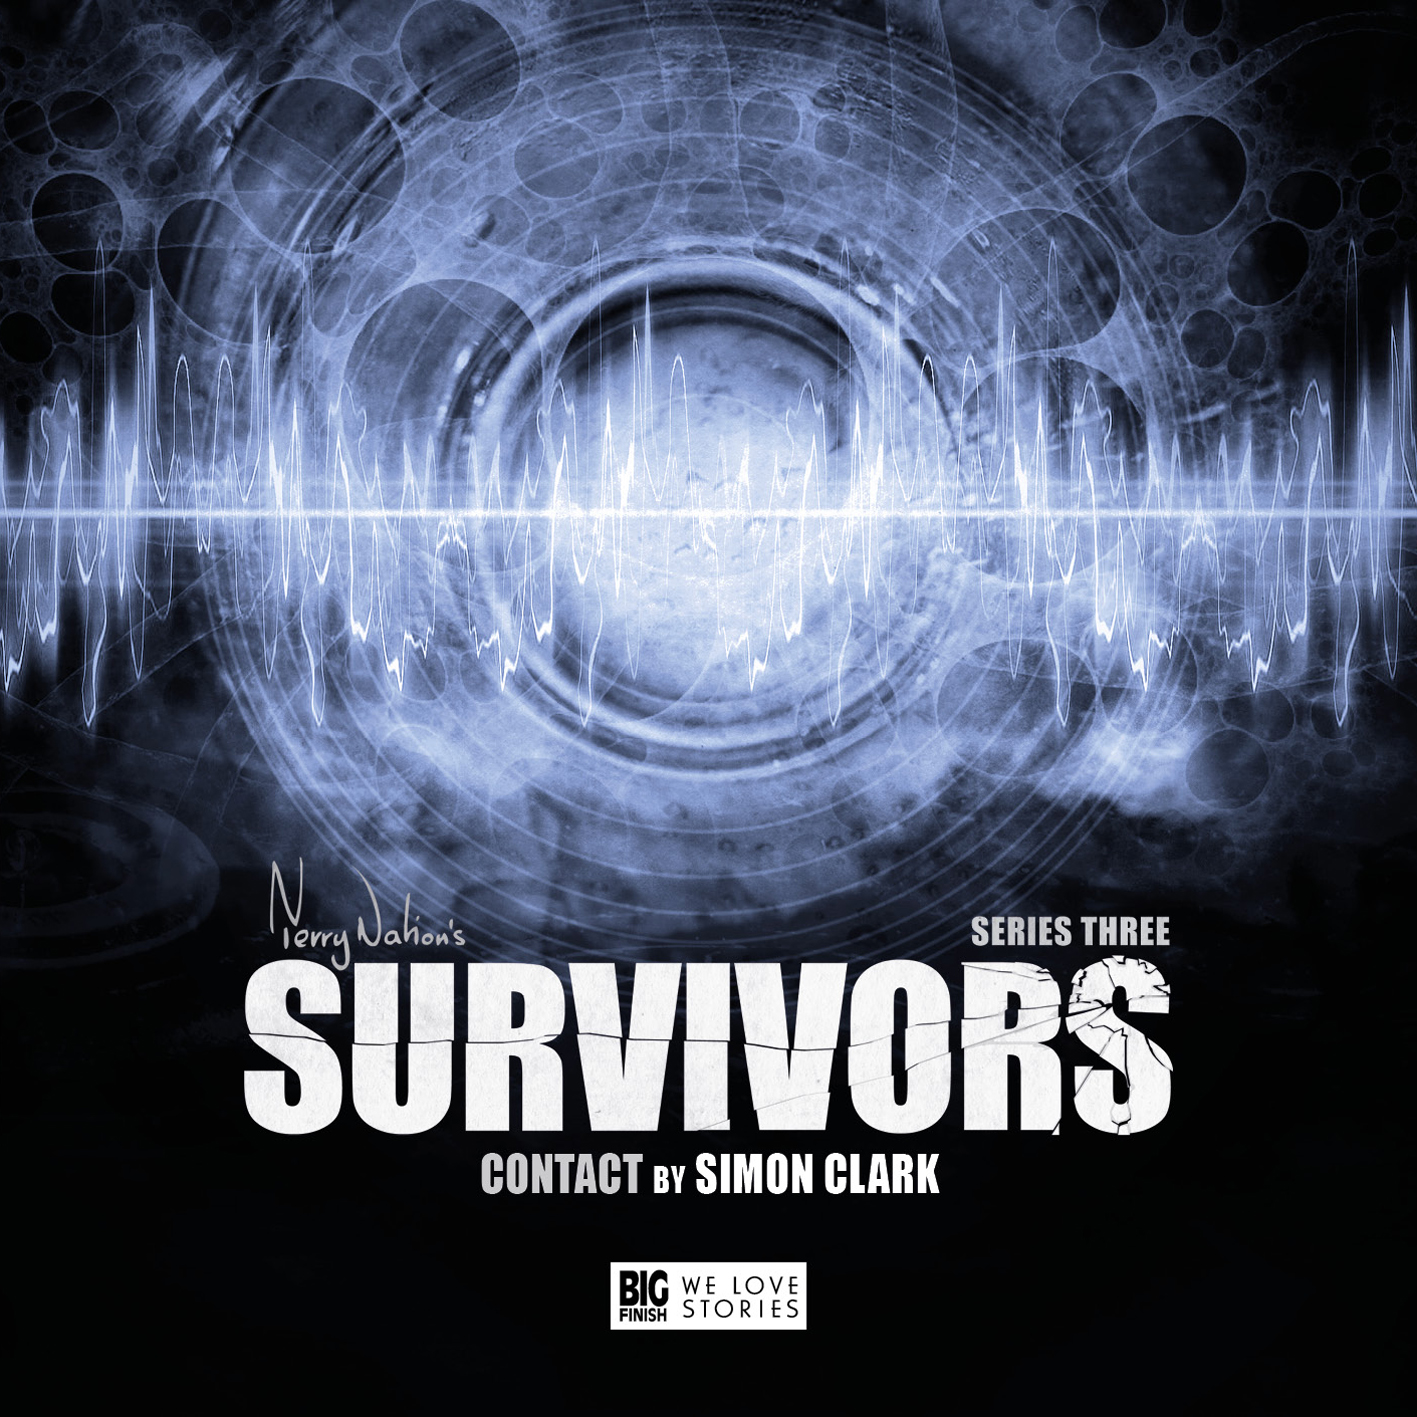 Episode image for Survivors 3:2 Contact